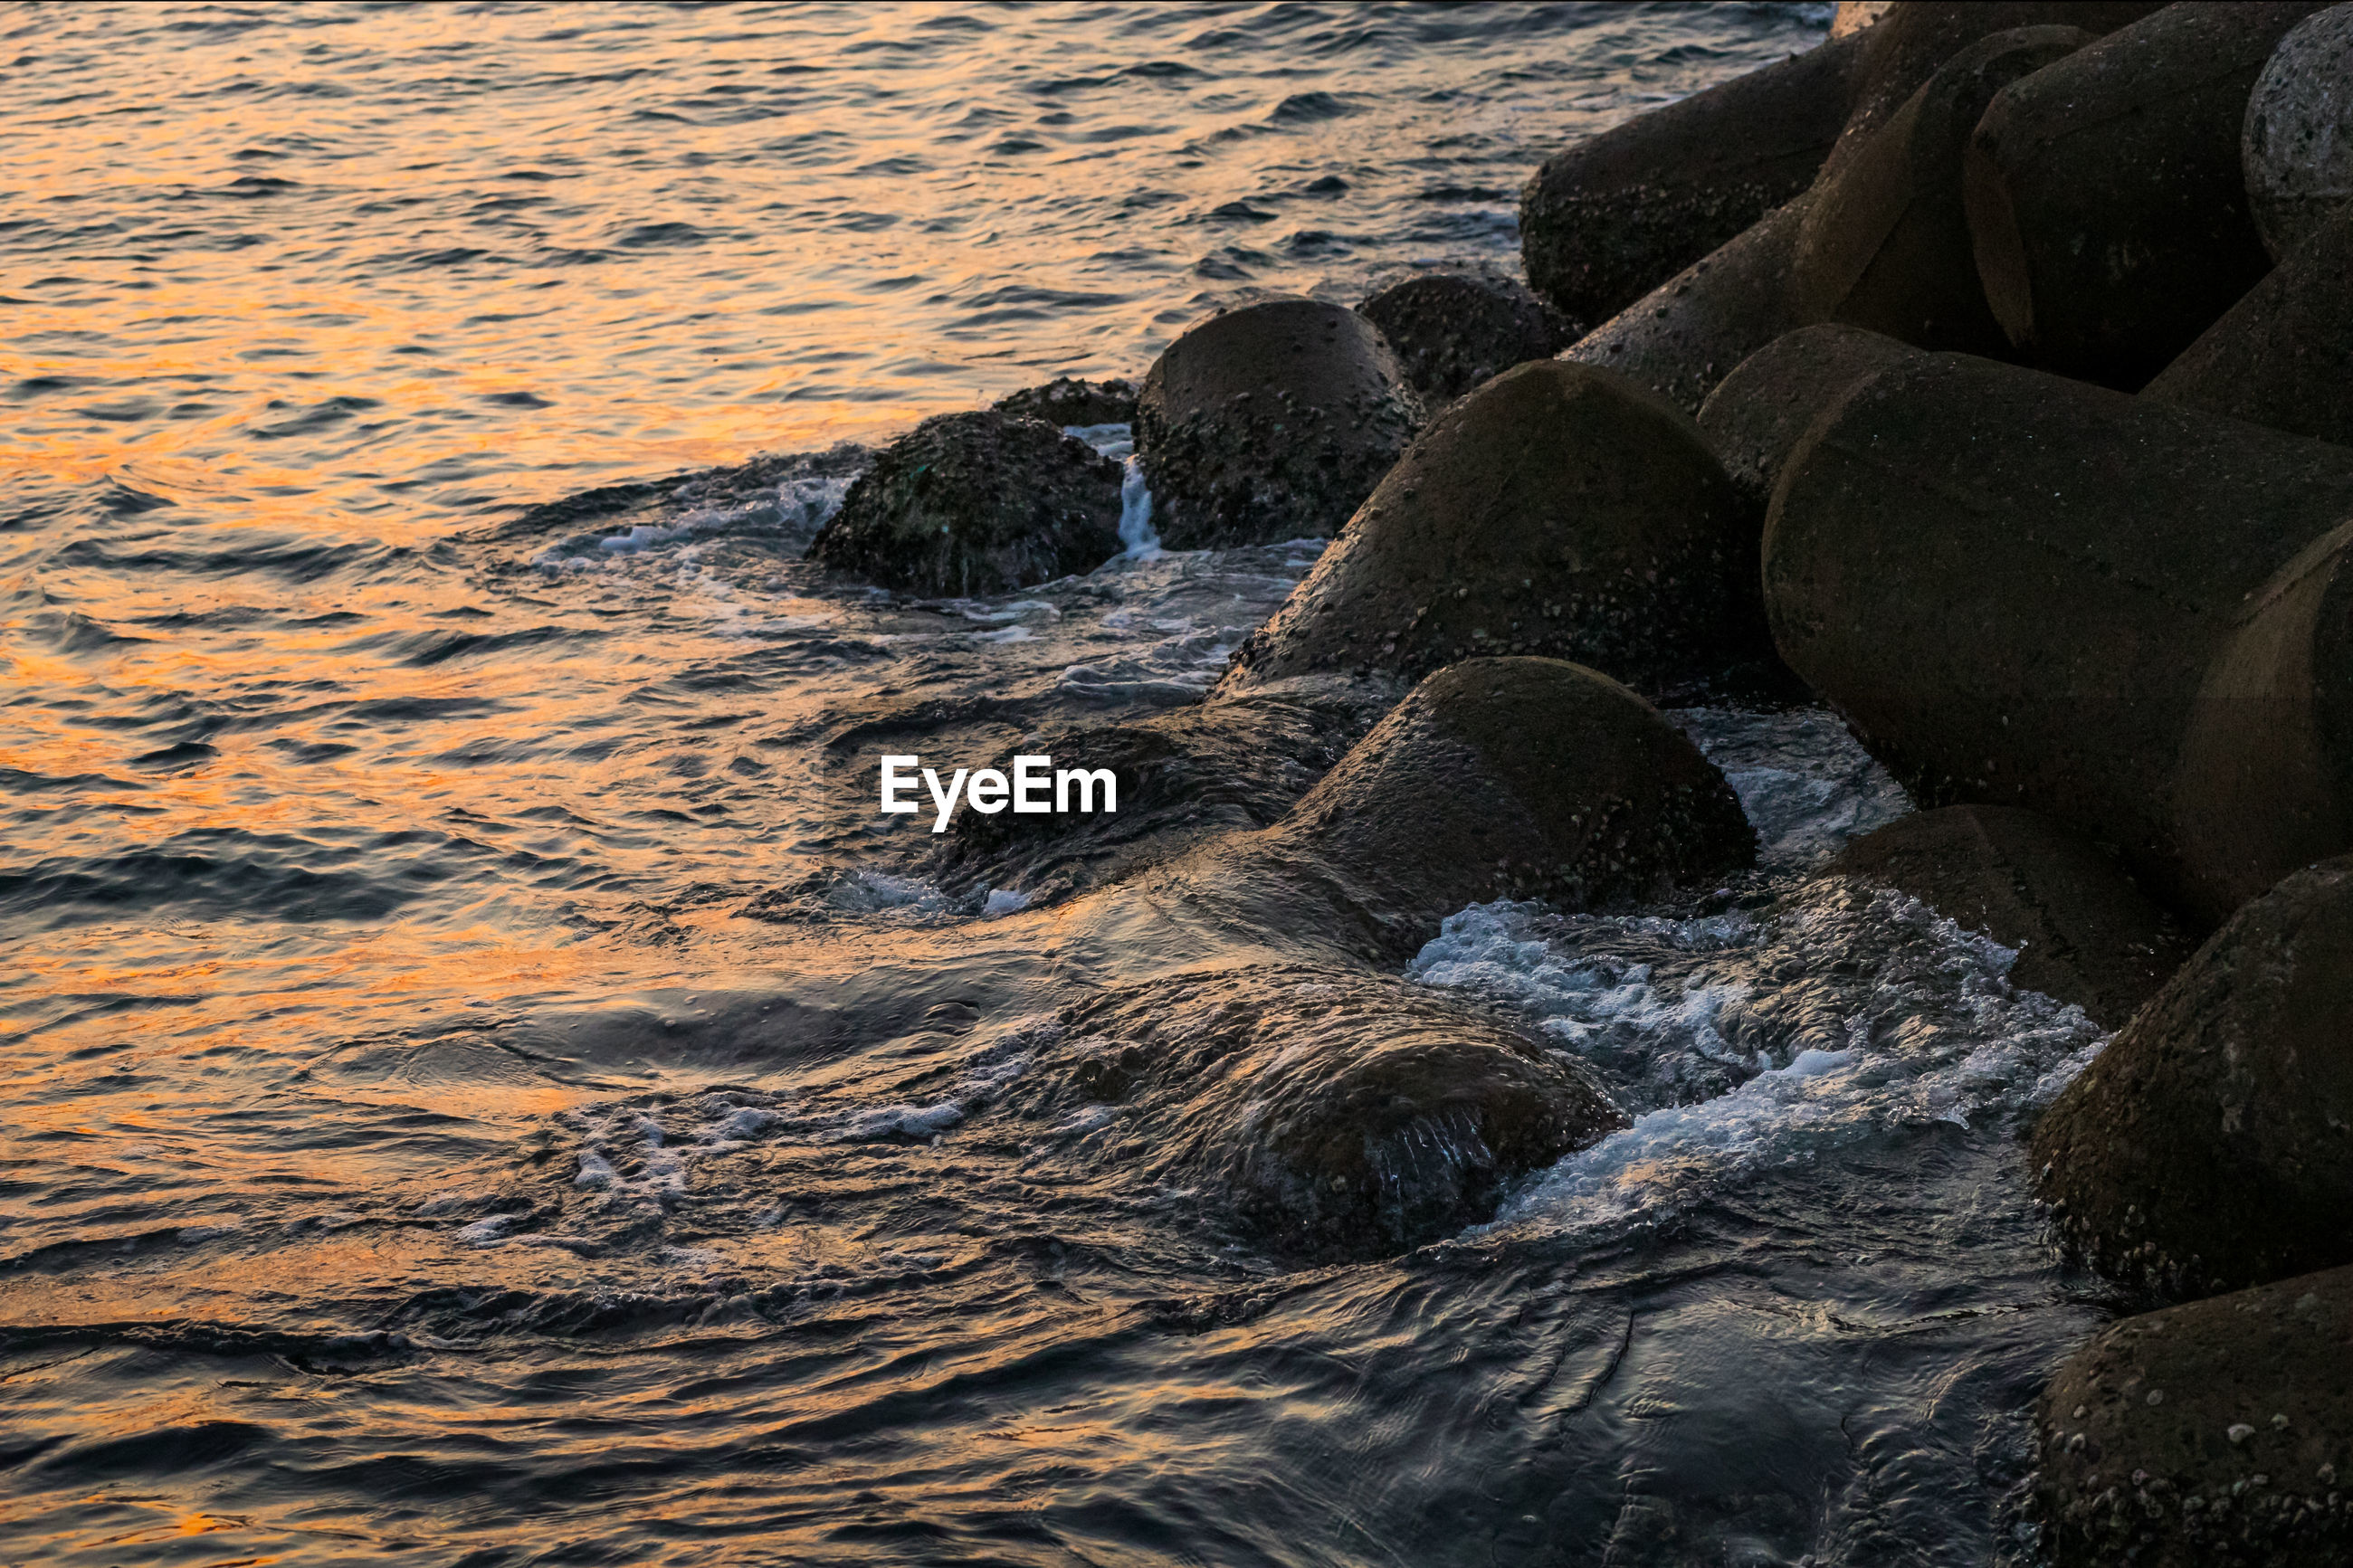 Tetrapods in sea during sunset